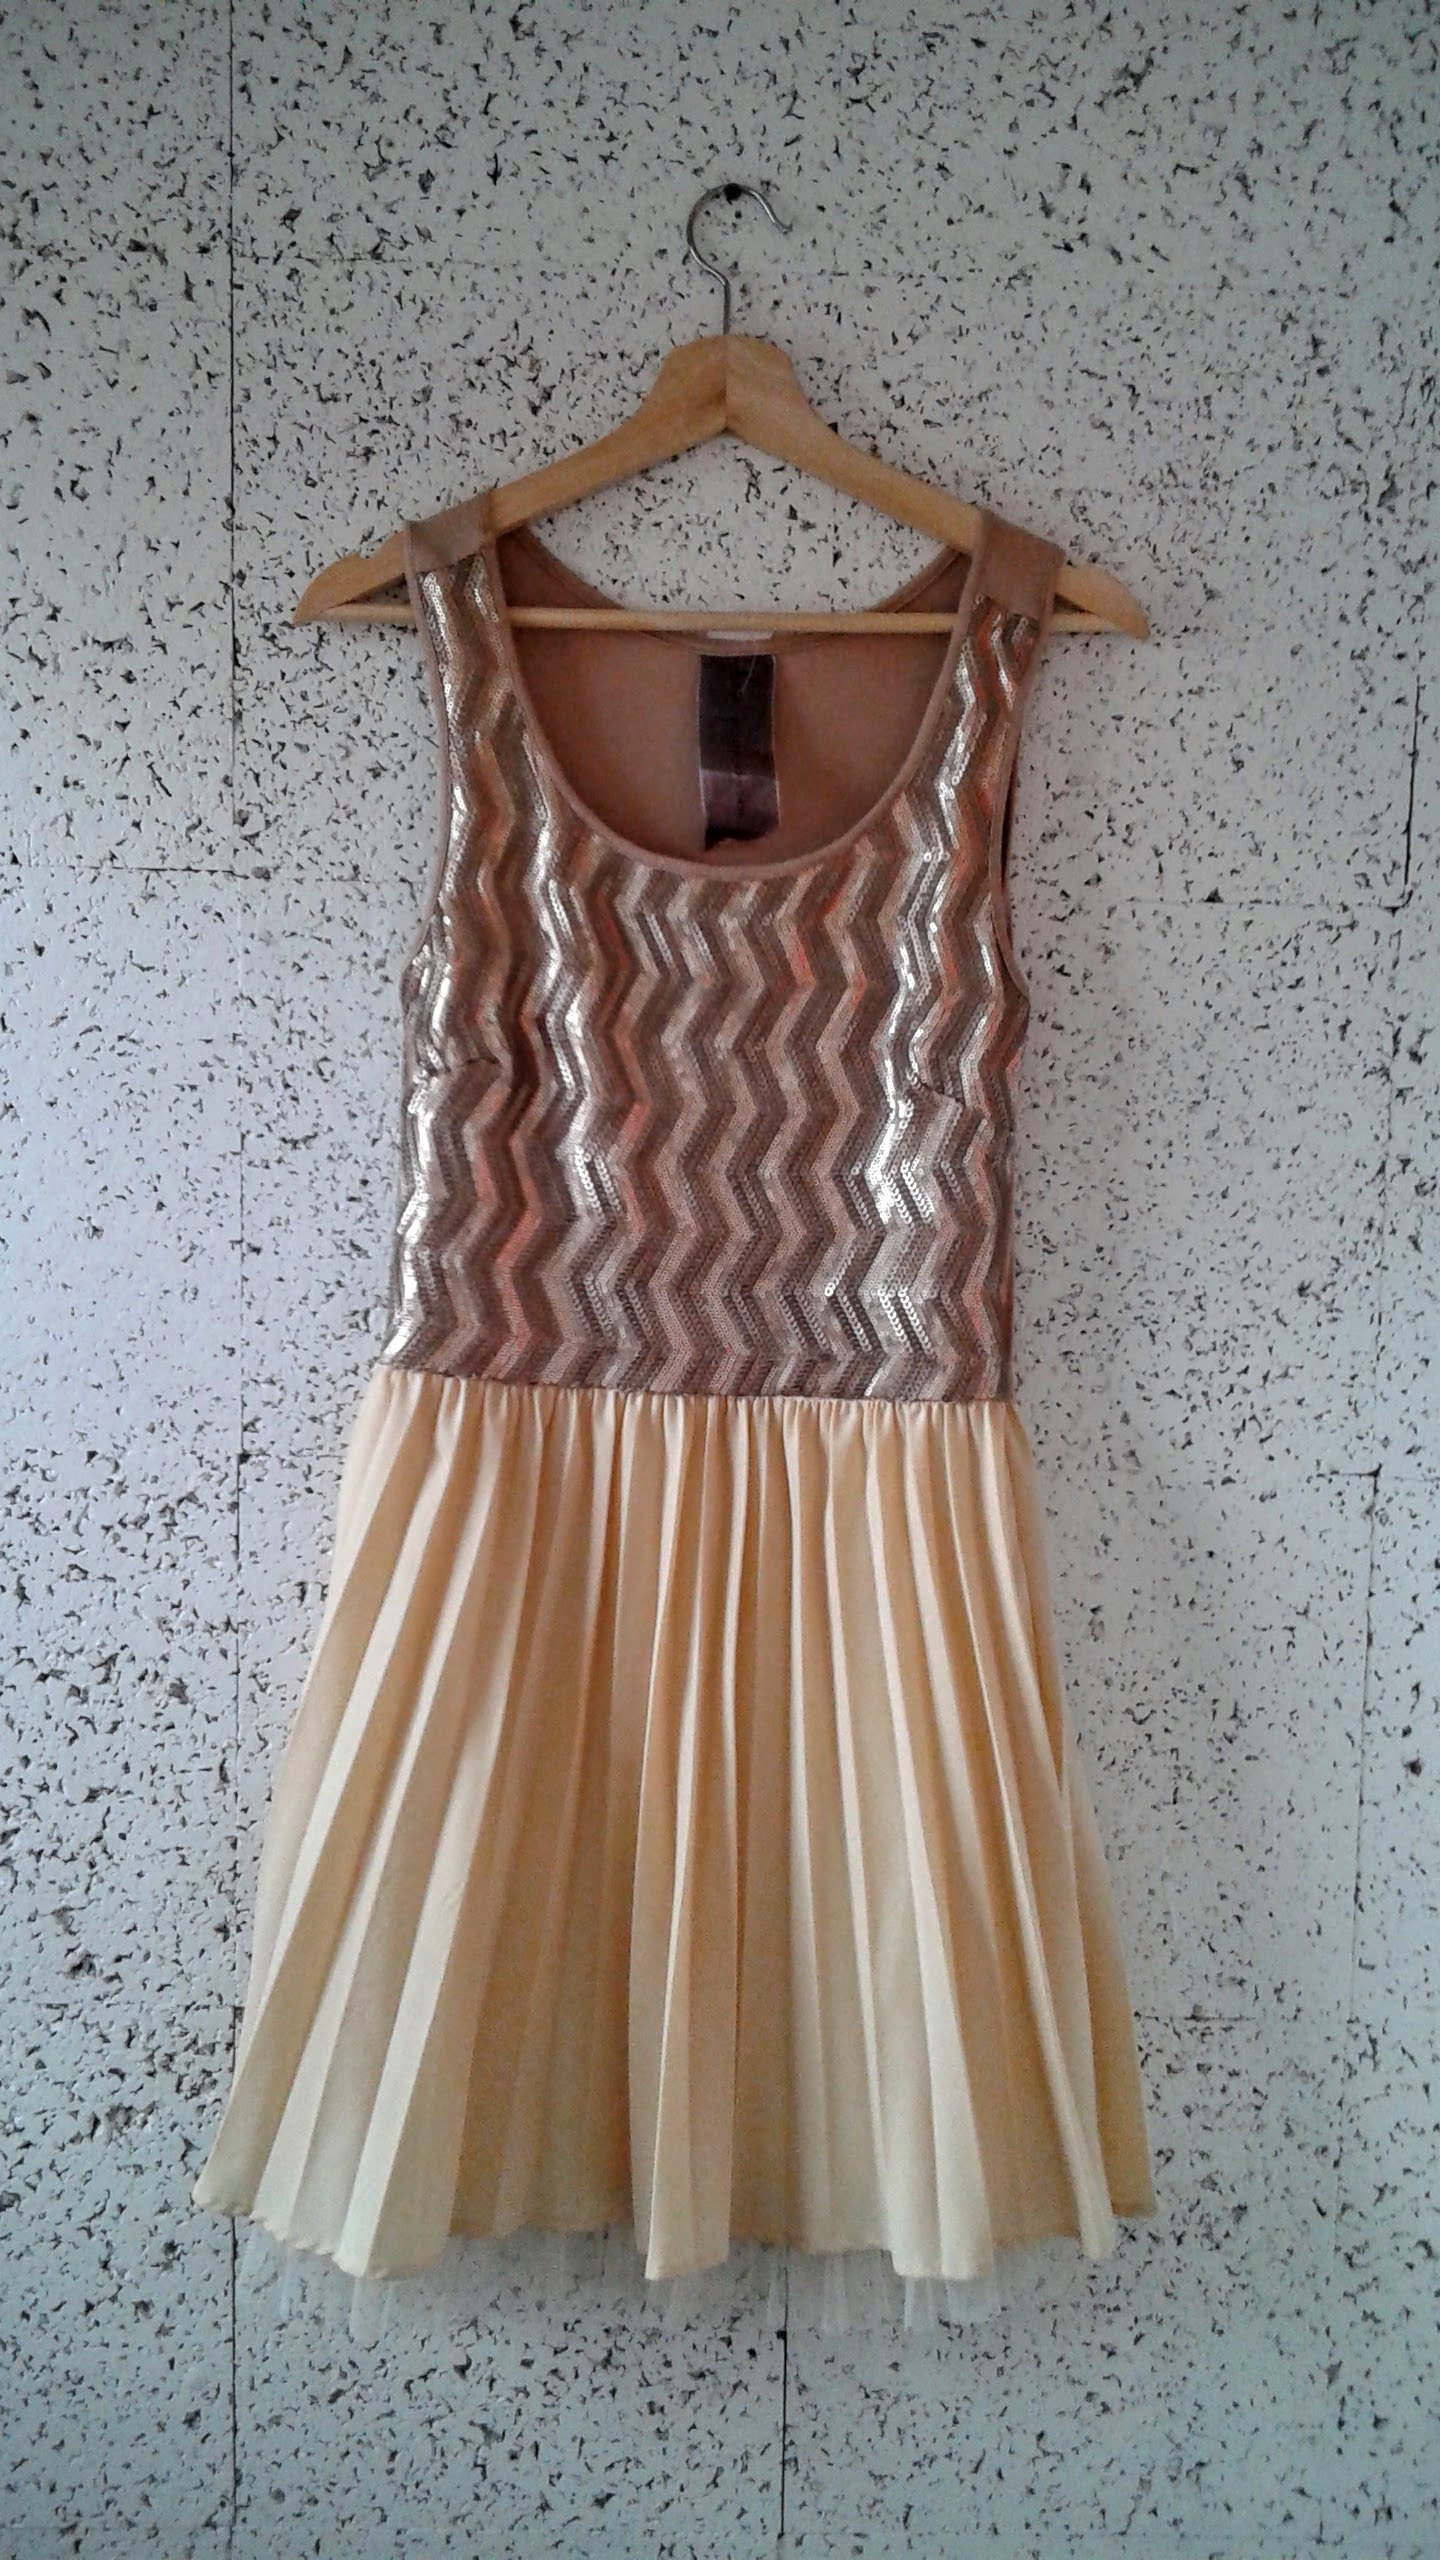 Moon Collection  dress; Size M, $32